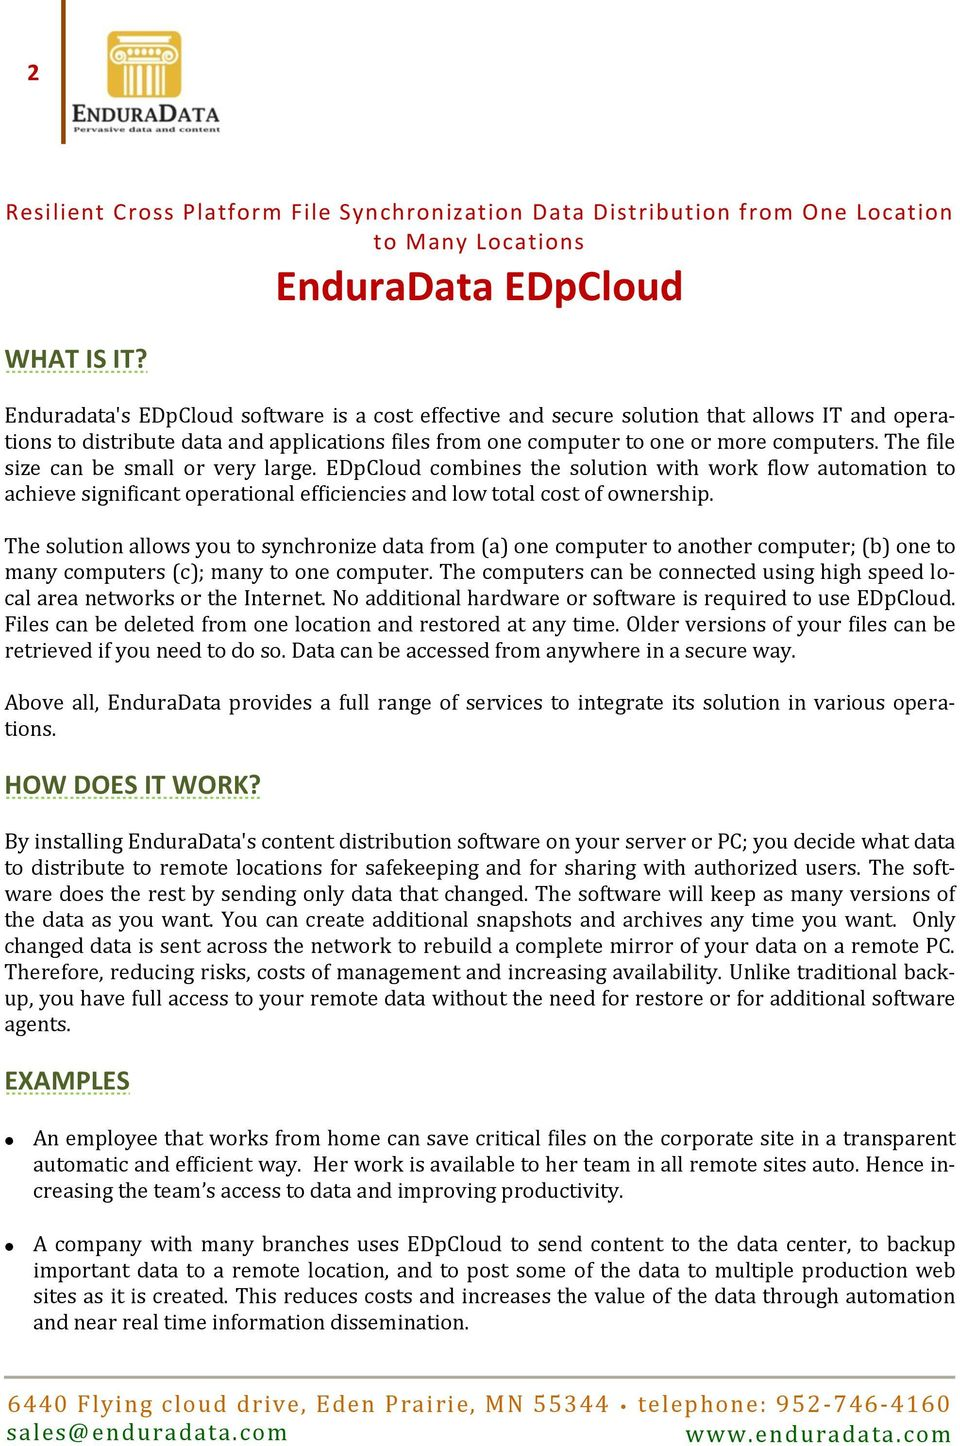 The file size can be small or very large. EDpCloud combines the solution with work flow automation to achieve significant operational efficiencies and low total cost of ownership.